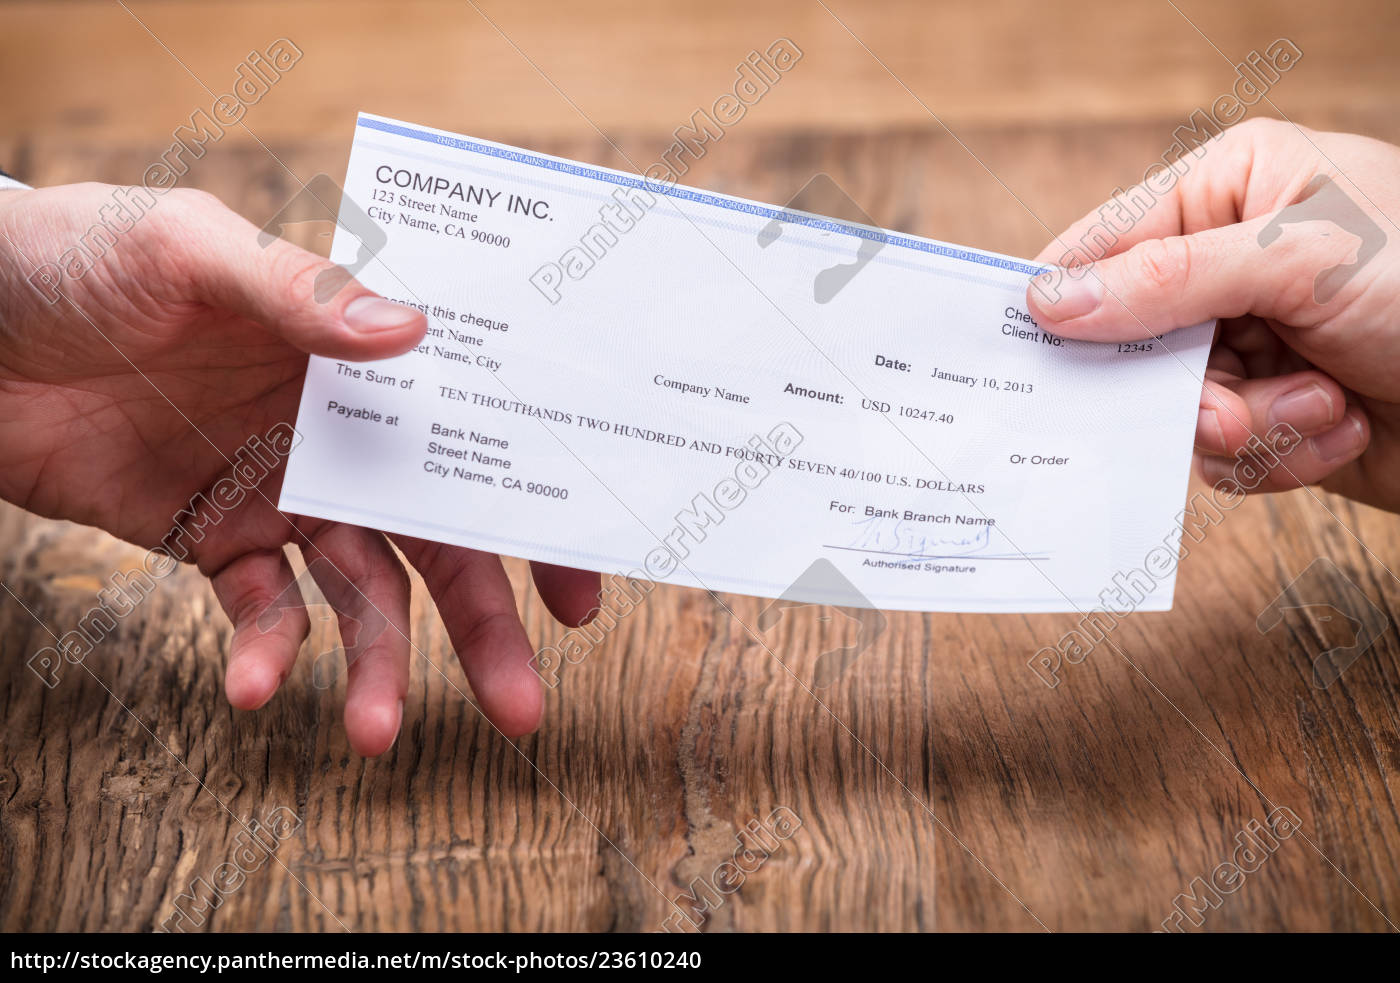 businessperson's, hand, giving, cheque, to, partner - 23610240